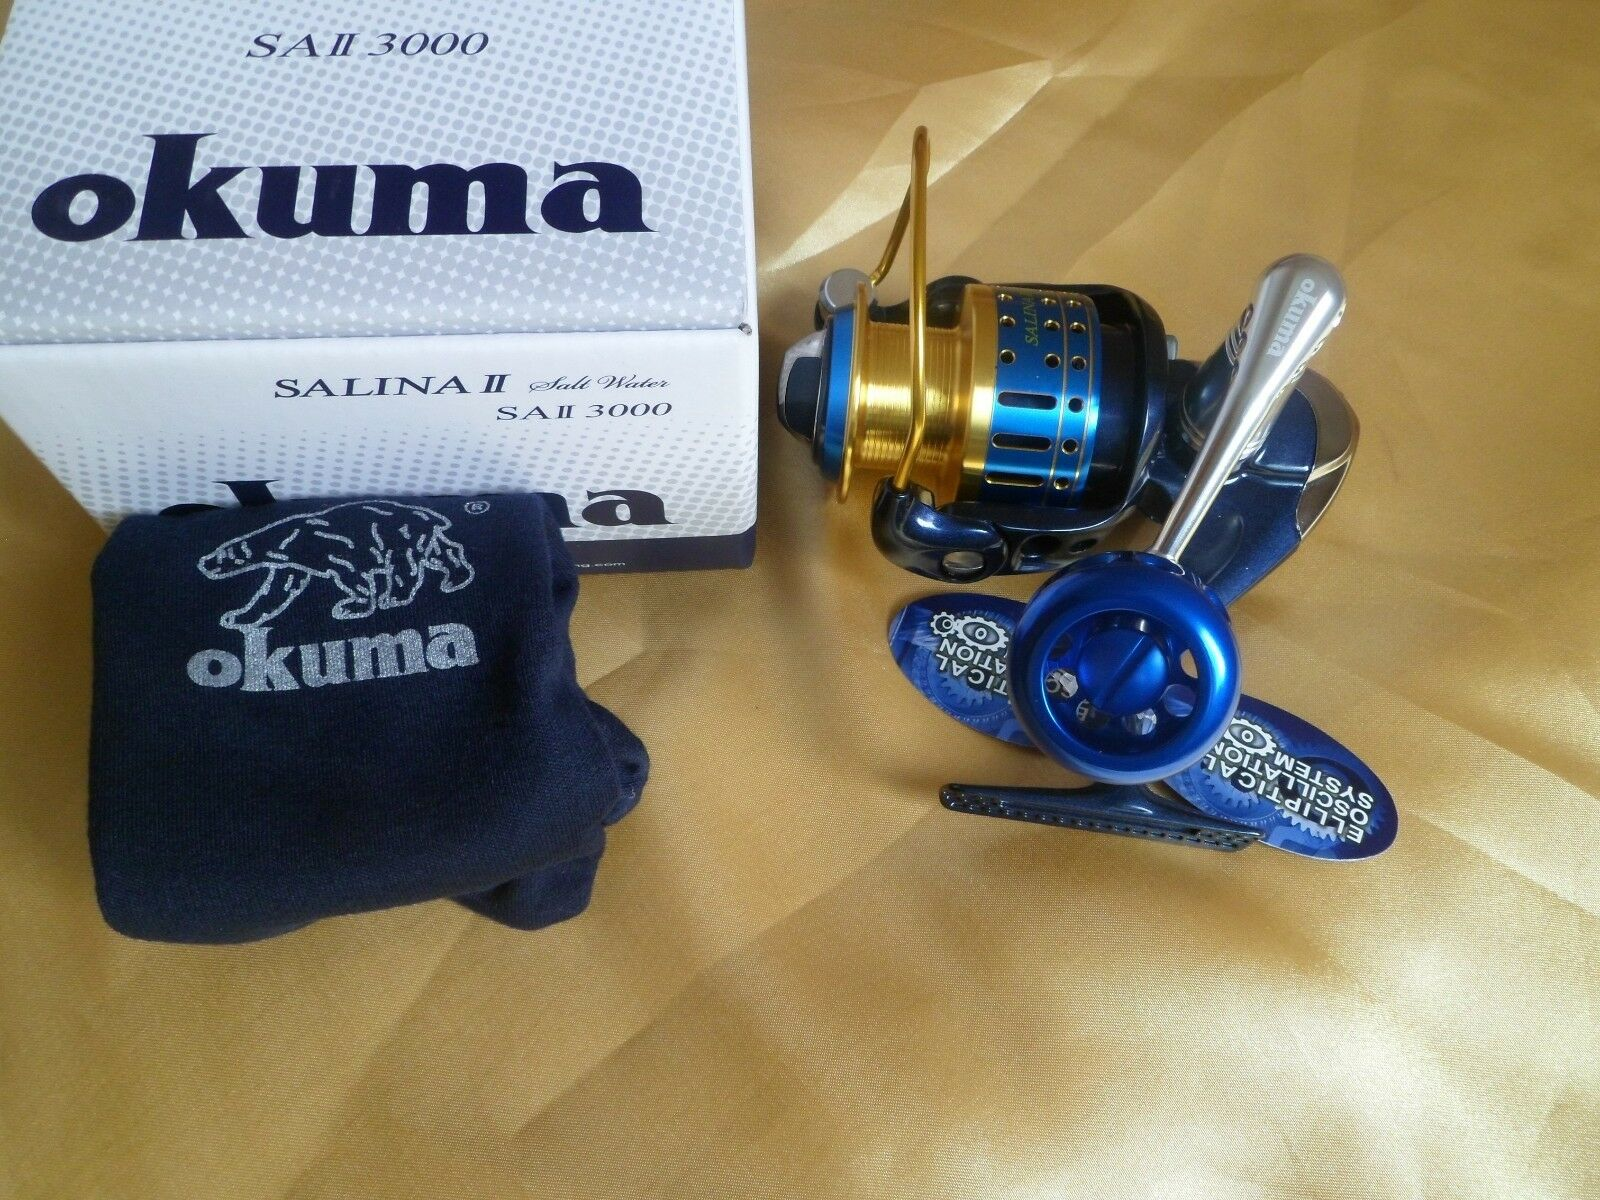 Okuma SALINA II 3000 Saltwater Fishing  Spinning Reel  23kg drag  best prices and freshest styles